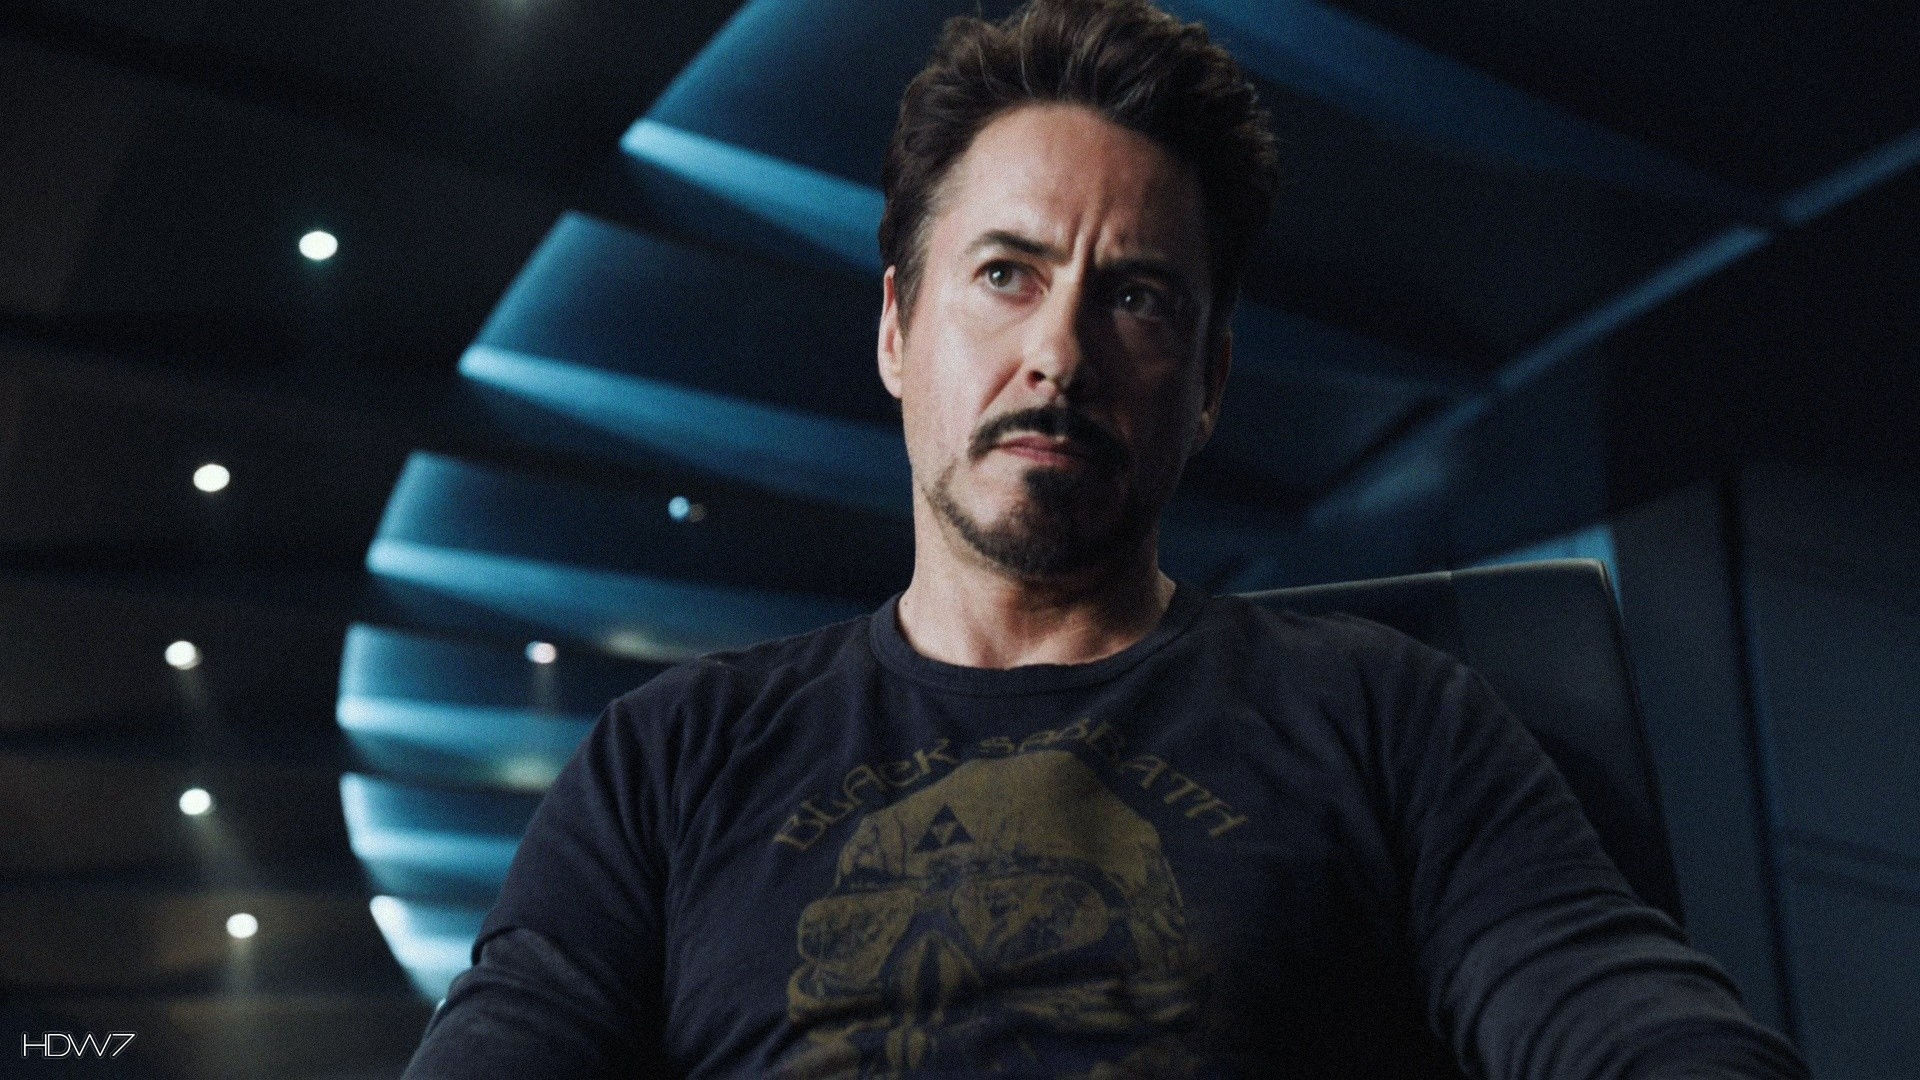 tony stark robert downey jr actors the avengers movie | hd wallpaper